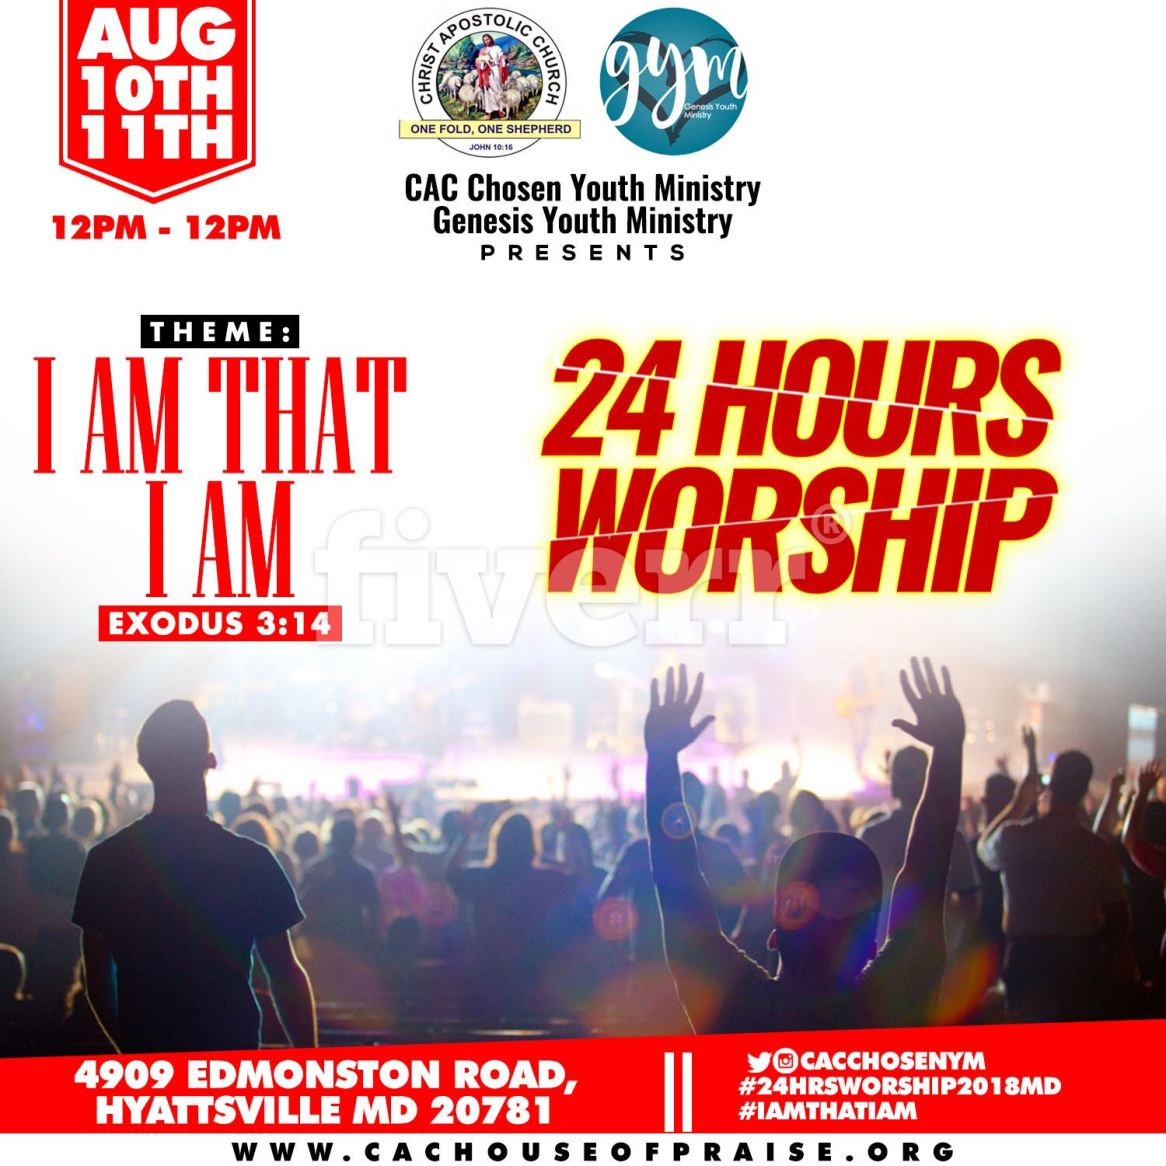 Maryland 24HoursWorship2018 - 10th-11th Aug. - 12pm